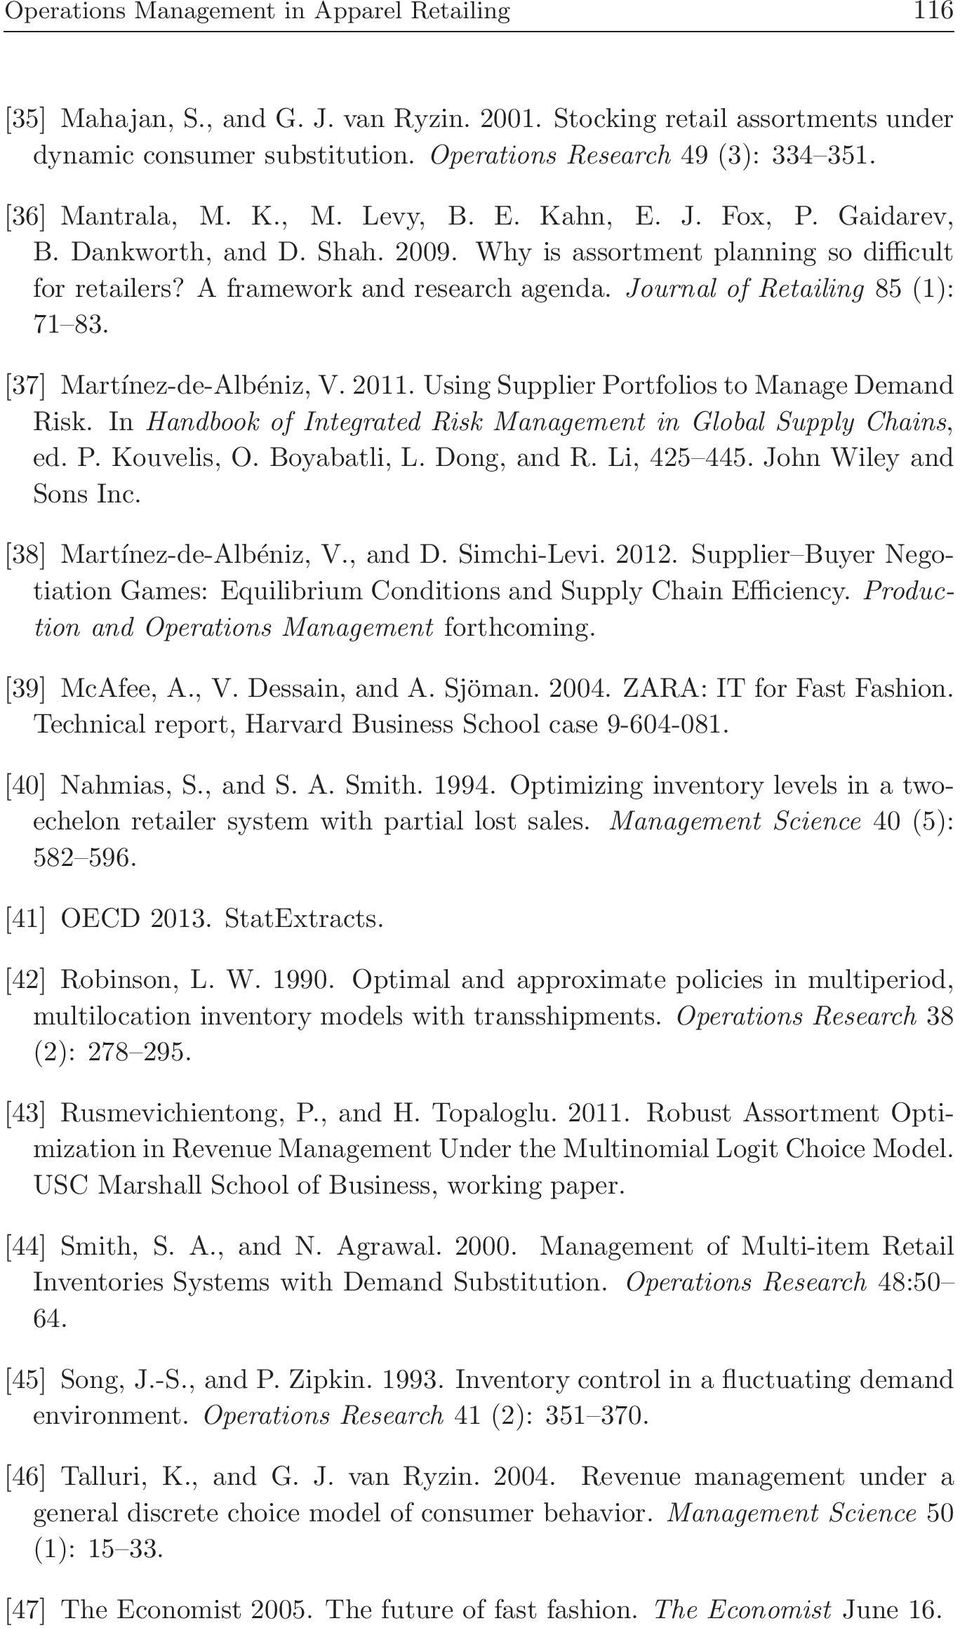 Journal of Retailing 85 (1): 71 83. [37] Martínez-de-Albéniz, V. 2011. Using Supplier Portfolios to Manage Demand Risk. In Handbook of Integrated Risk Management in Global Supply Chains, ed. P. Kouvelis, O.